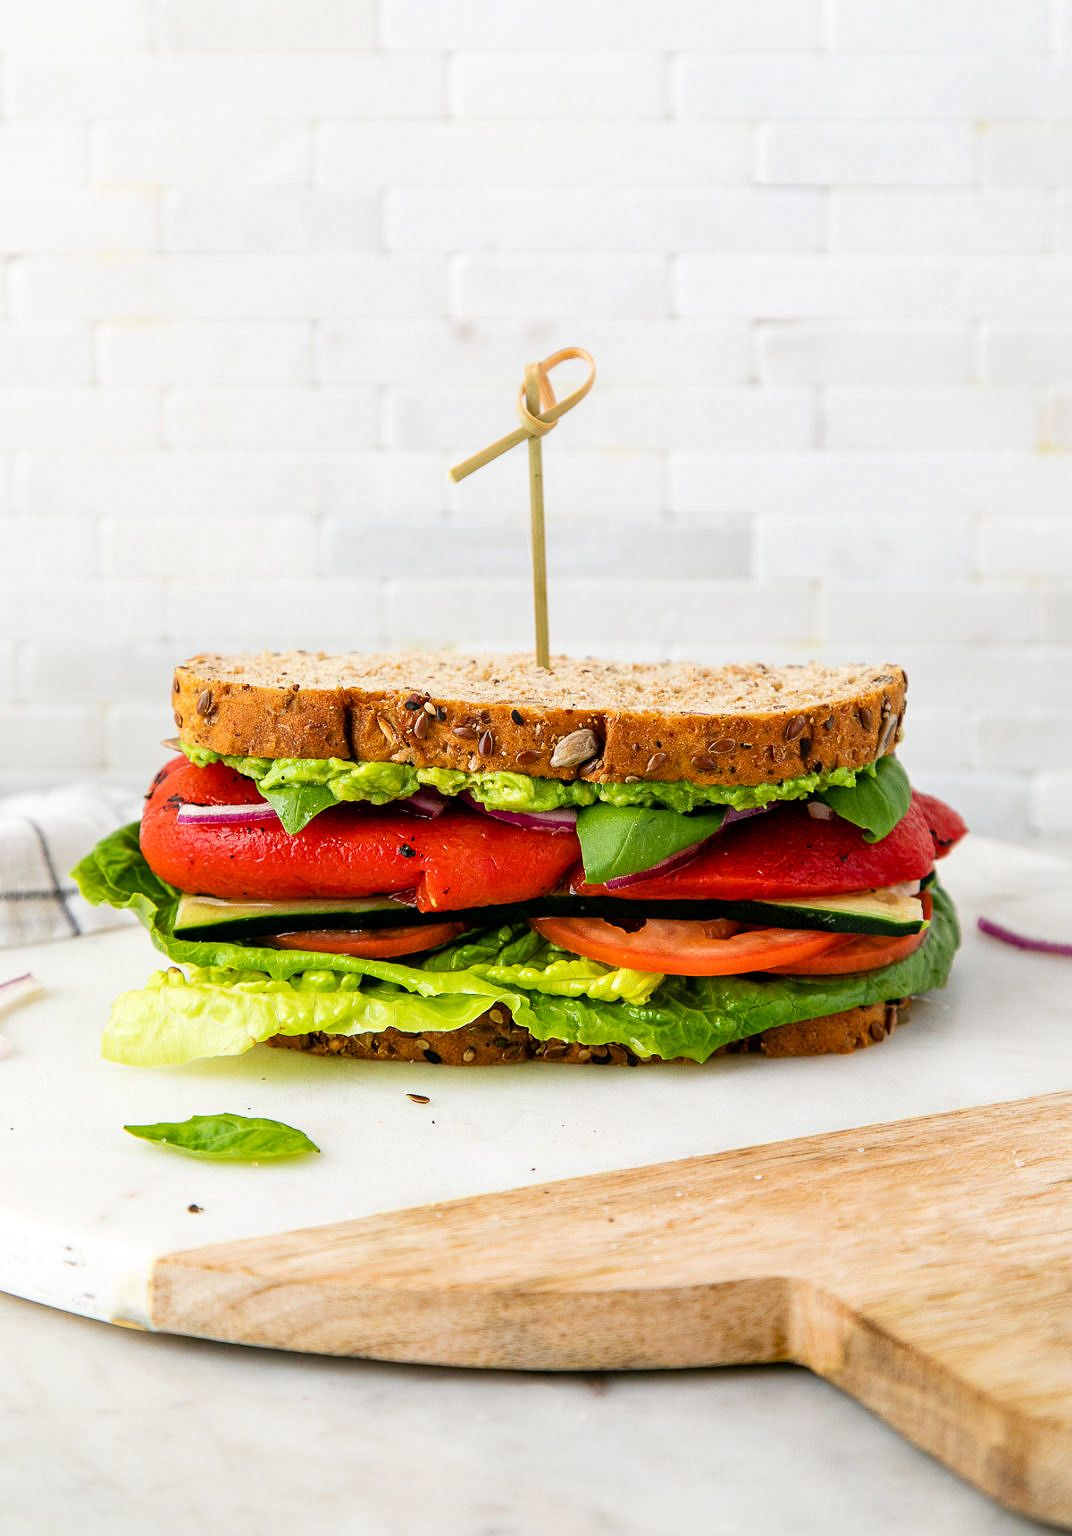 Mediterranean Veggie Sandwich Aka Roasted Red Pepper Hummus Avocado Sandwich Is Super Easy To Make And In 2020 Vegan Recipes Healthy Veggie Sandwich Food Recipies